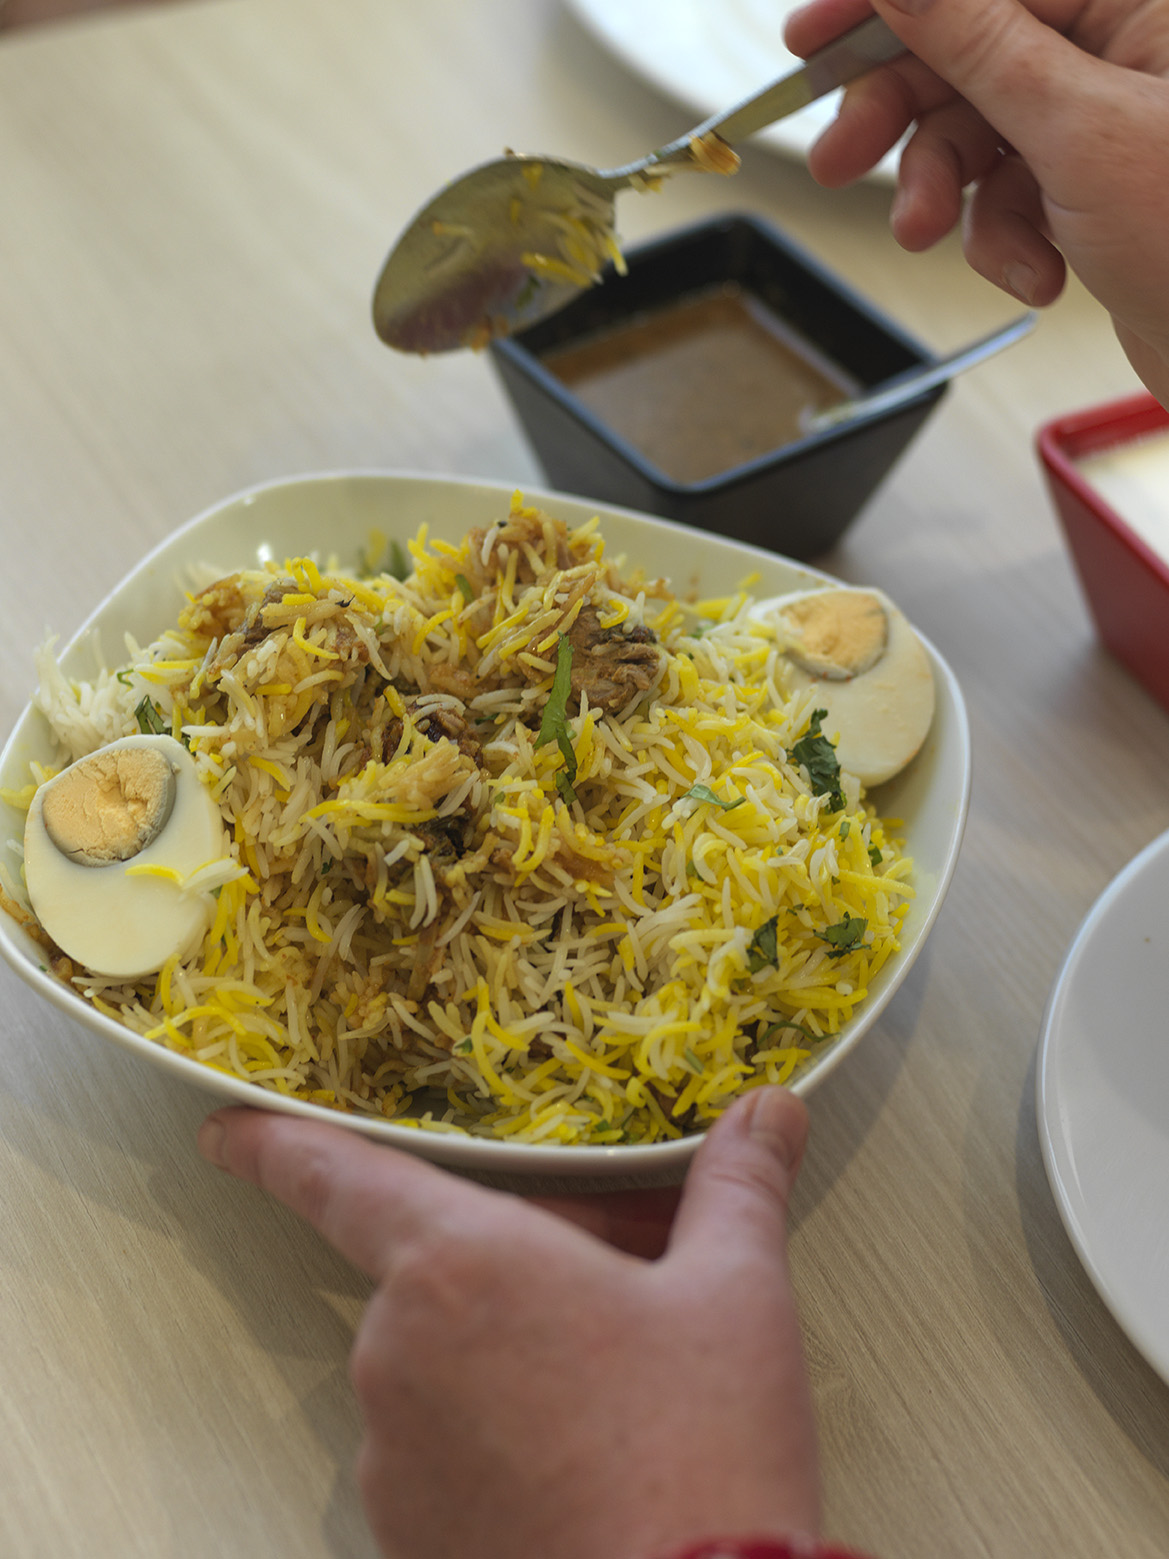 Traditional doesn't alway mean beautiful - Hyderabad House's goat dum biryani is the definition of ugly delicious.